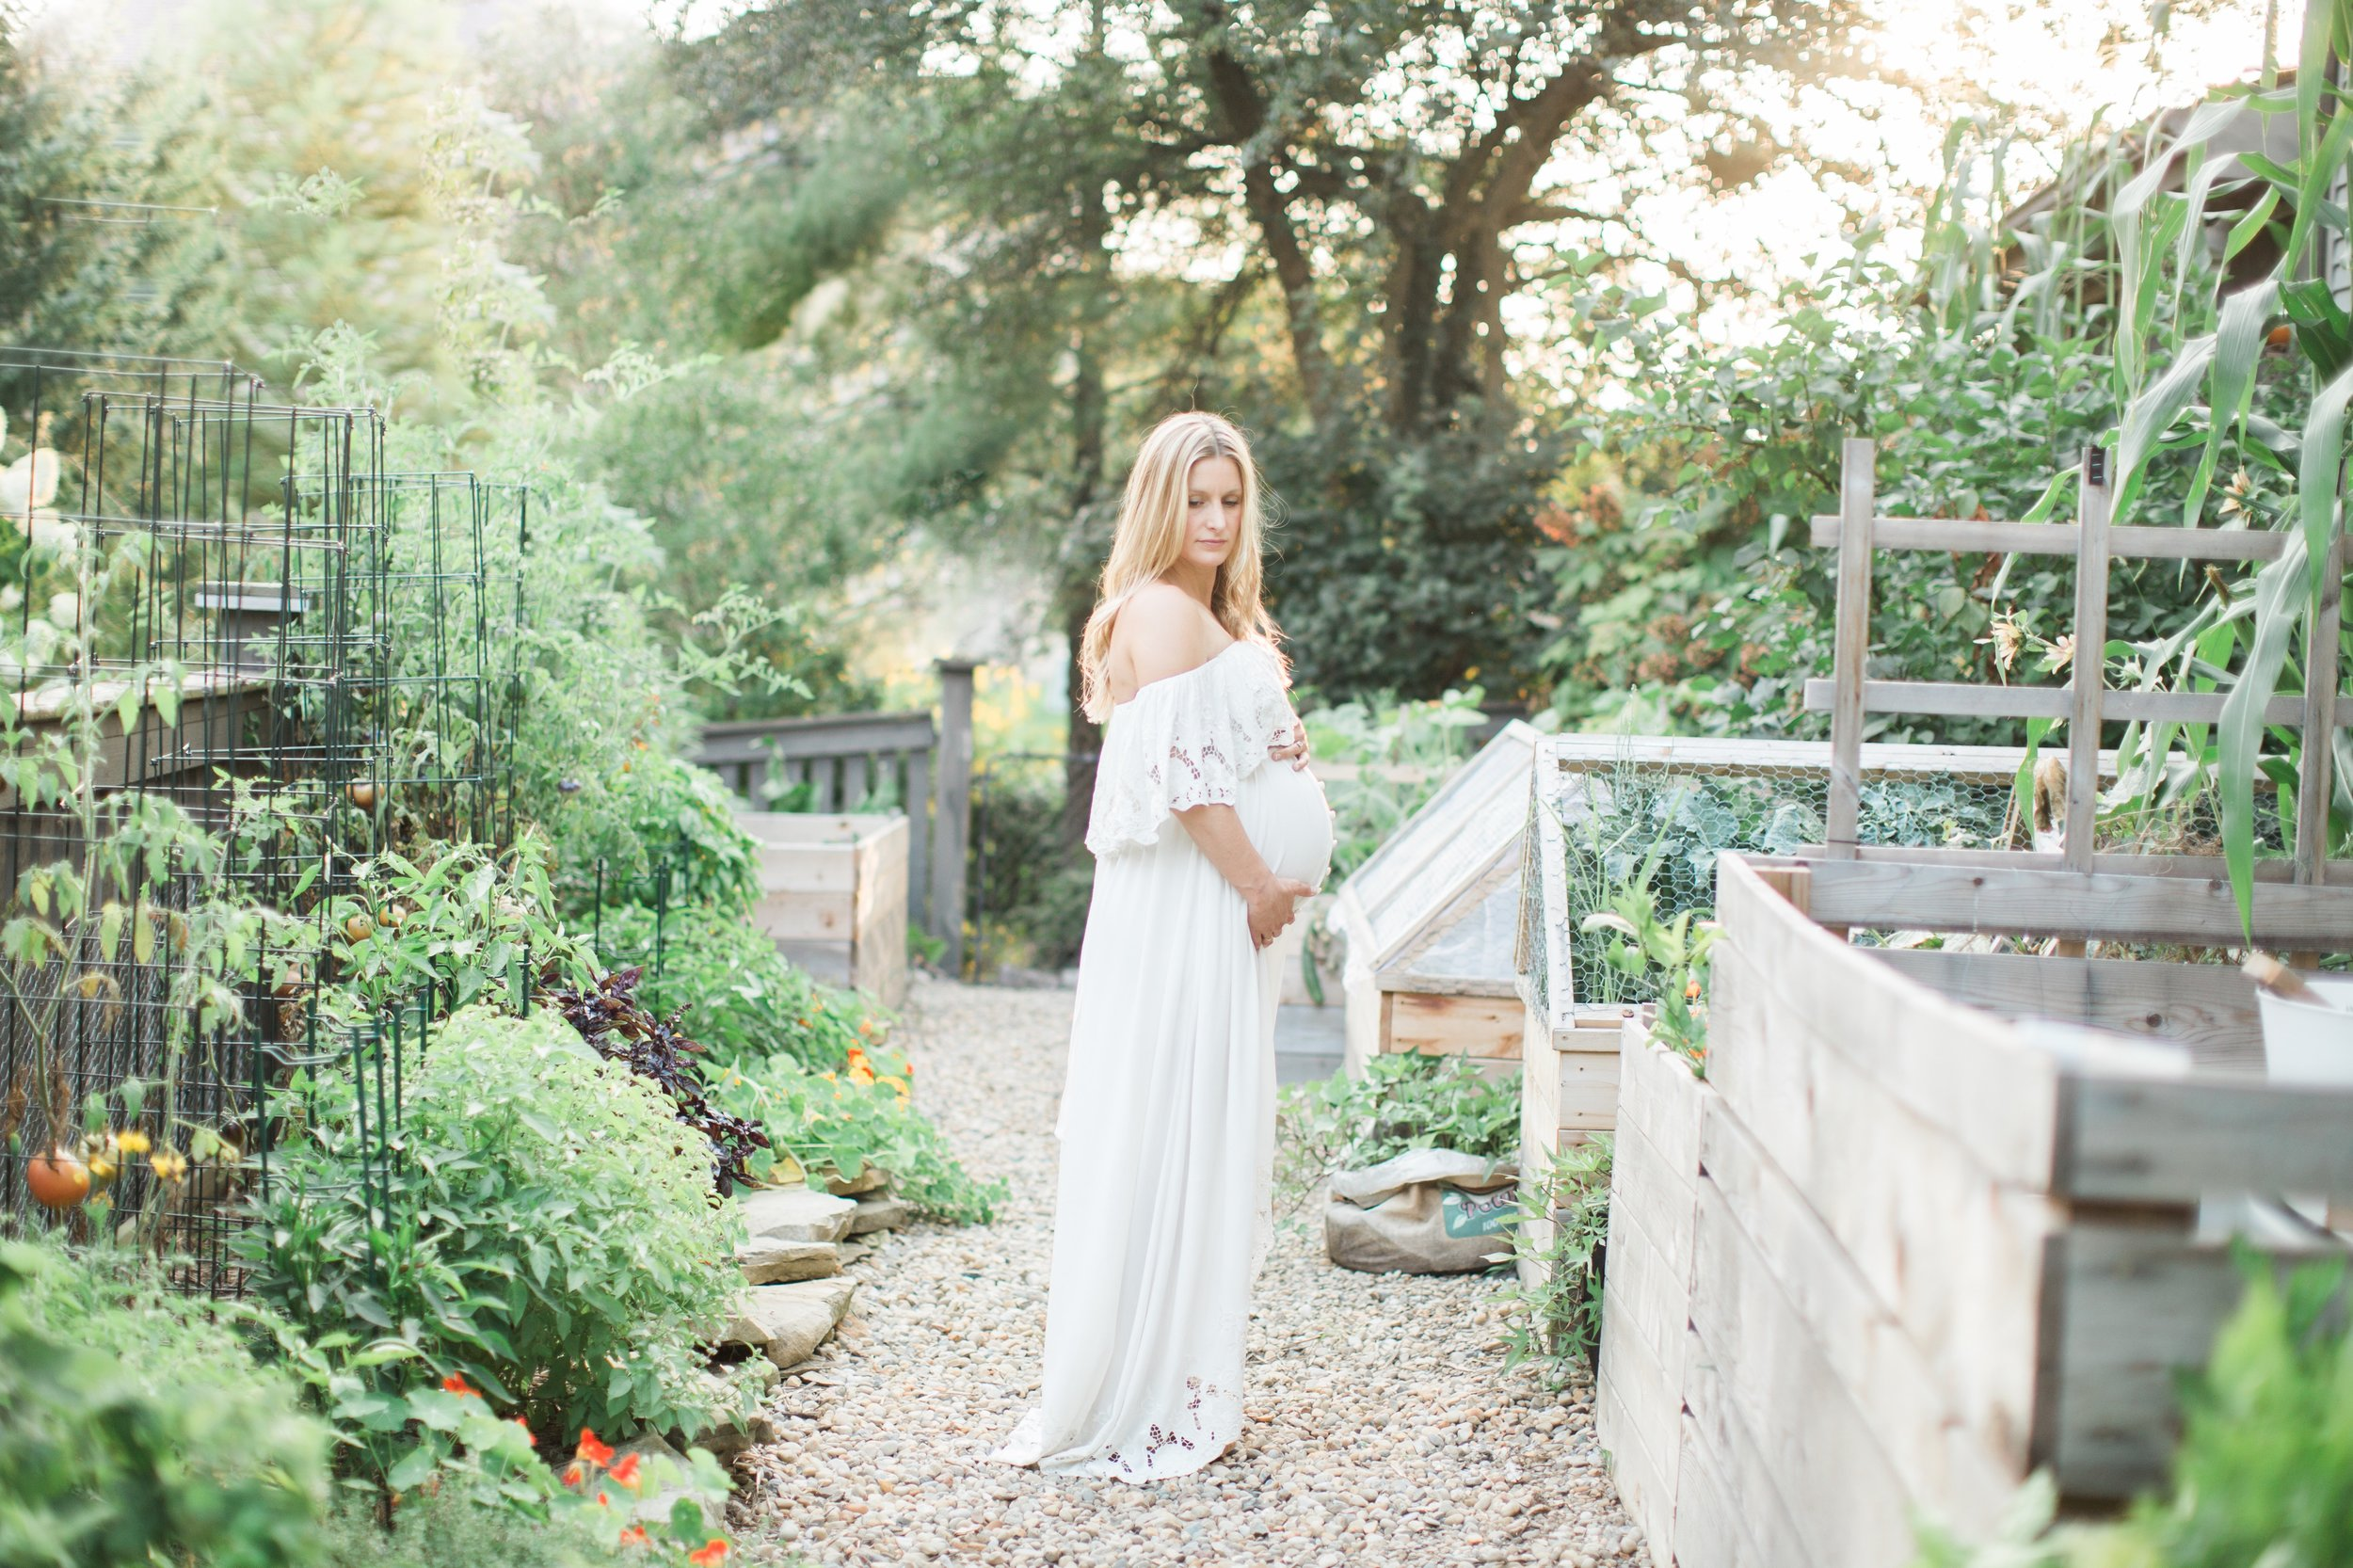 """lori baskin - Columbus, OH, USA""""It has allowed me to have work life balance. I enjoy have the ability to run my own business and still photograph products for Shutterstock and the amazing companies."""""""